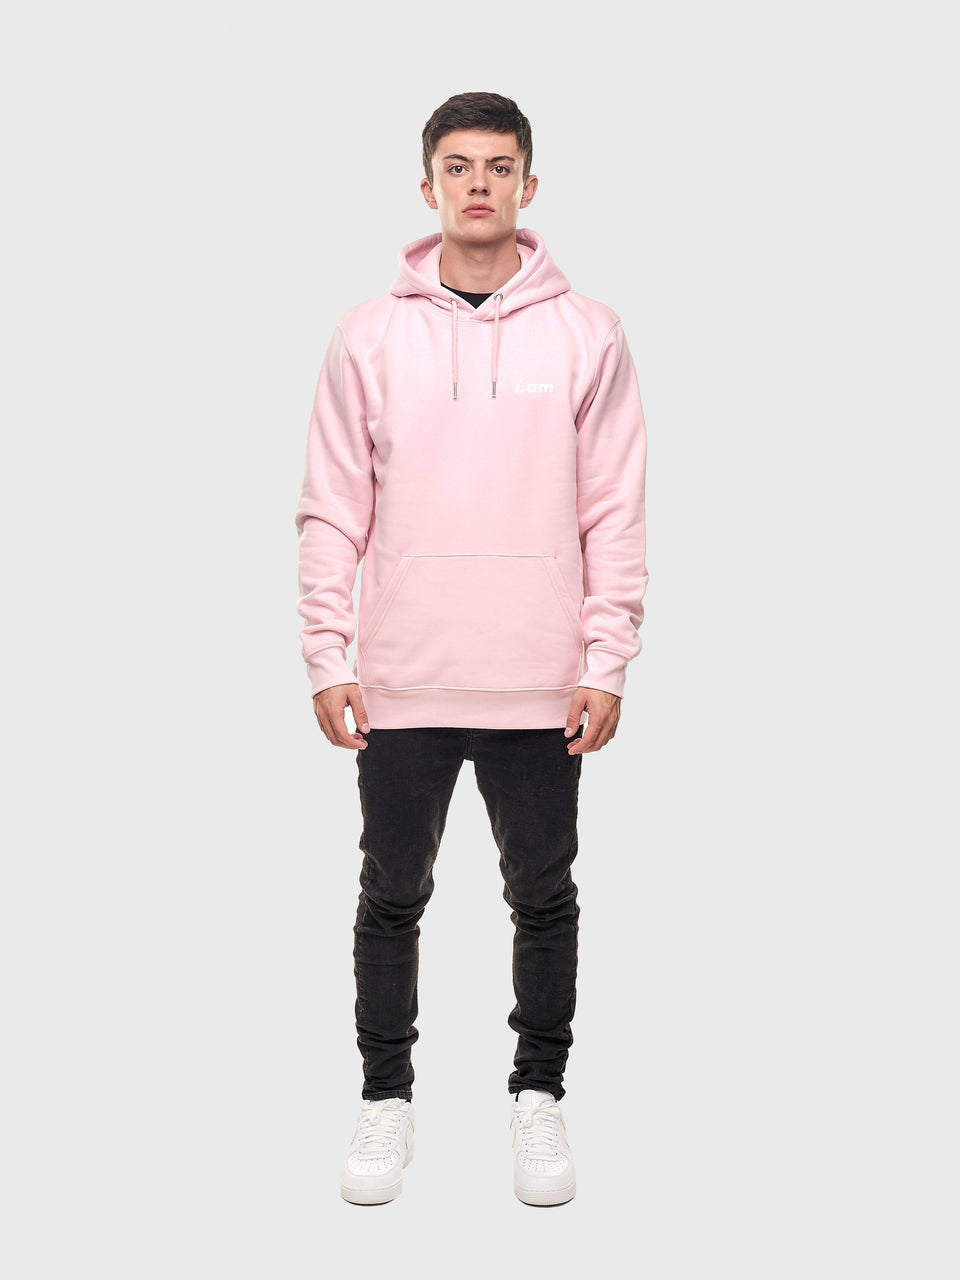 The connect - Pink - Unisex pull over hoodie